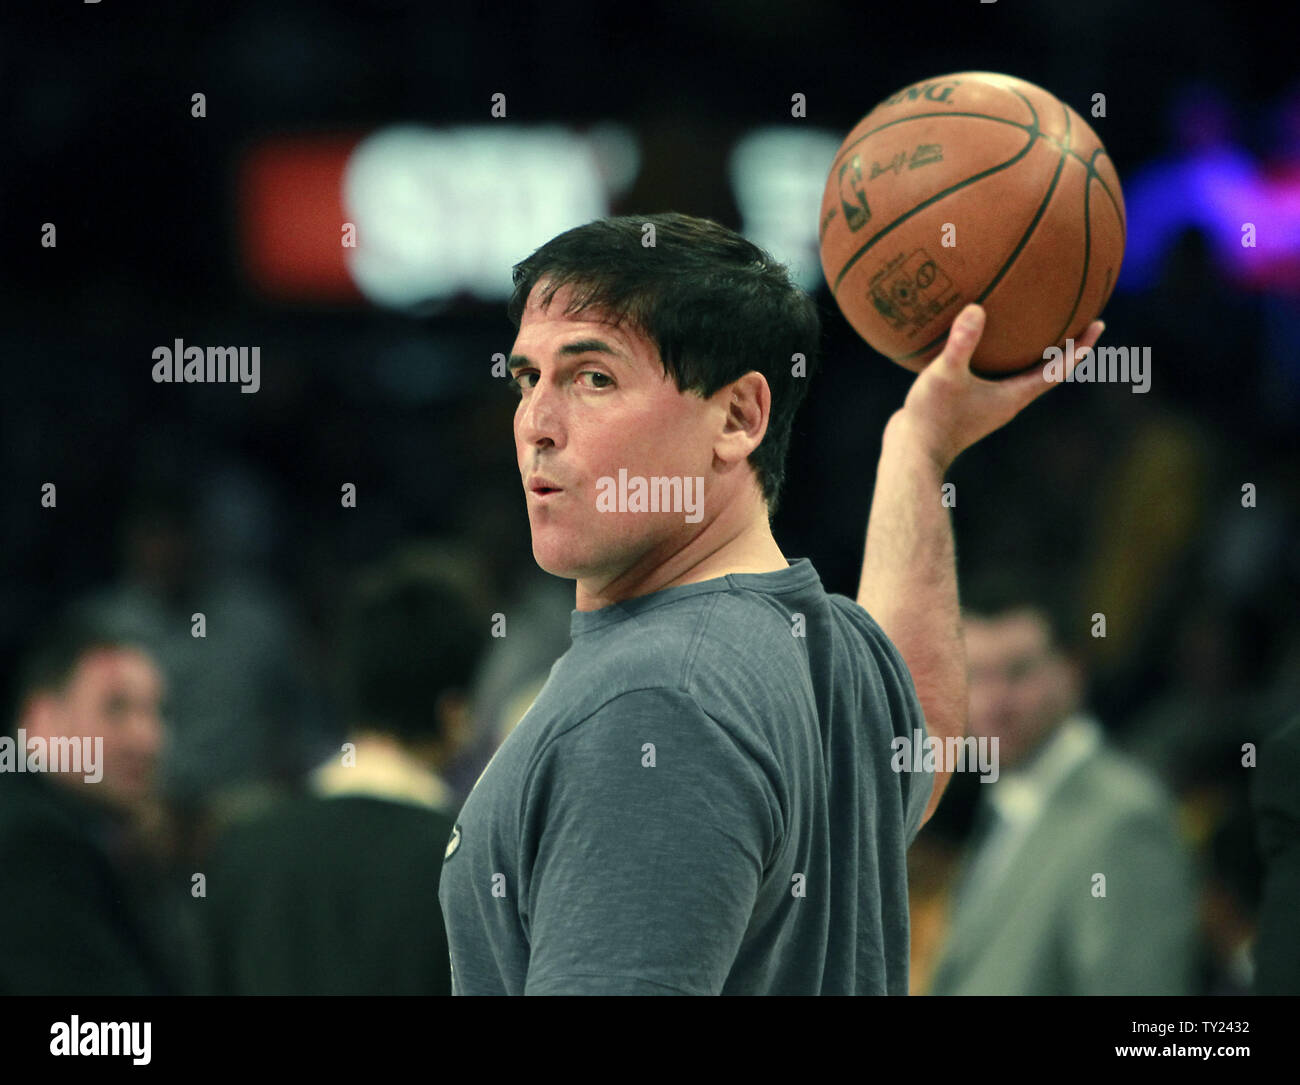 Dallas Mavericks Owner Mark Cuban On The Court During Pre